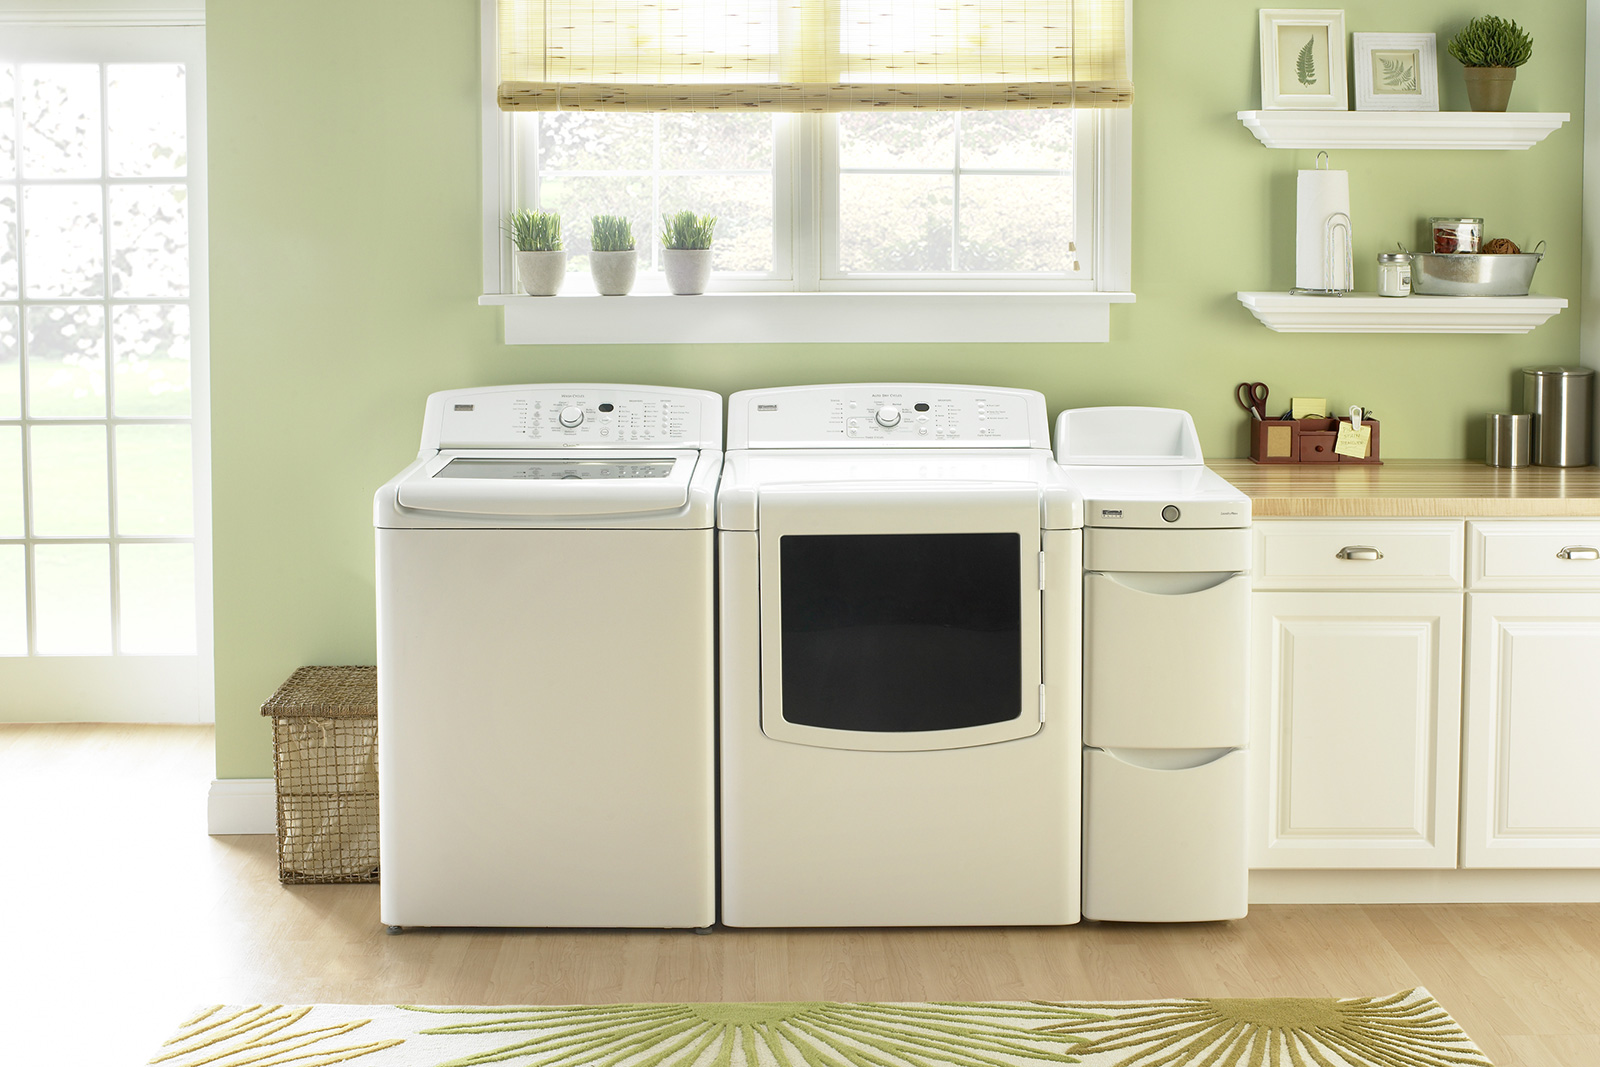 Buy Washer | Washing Machine Buying Guide | HouseLogic